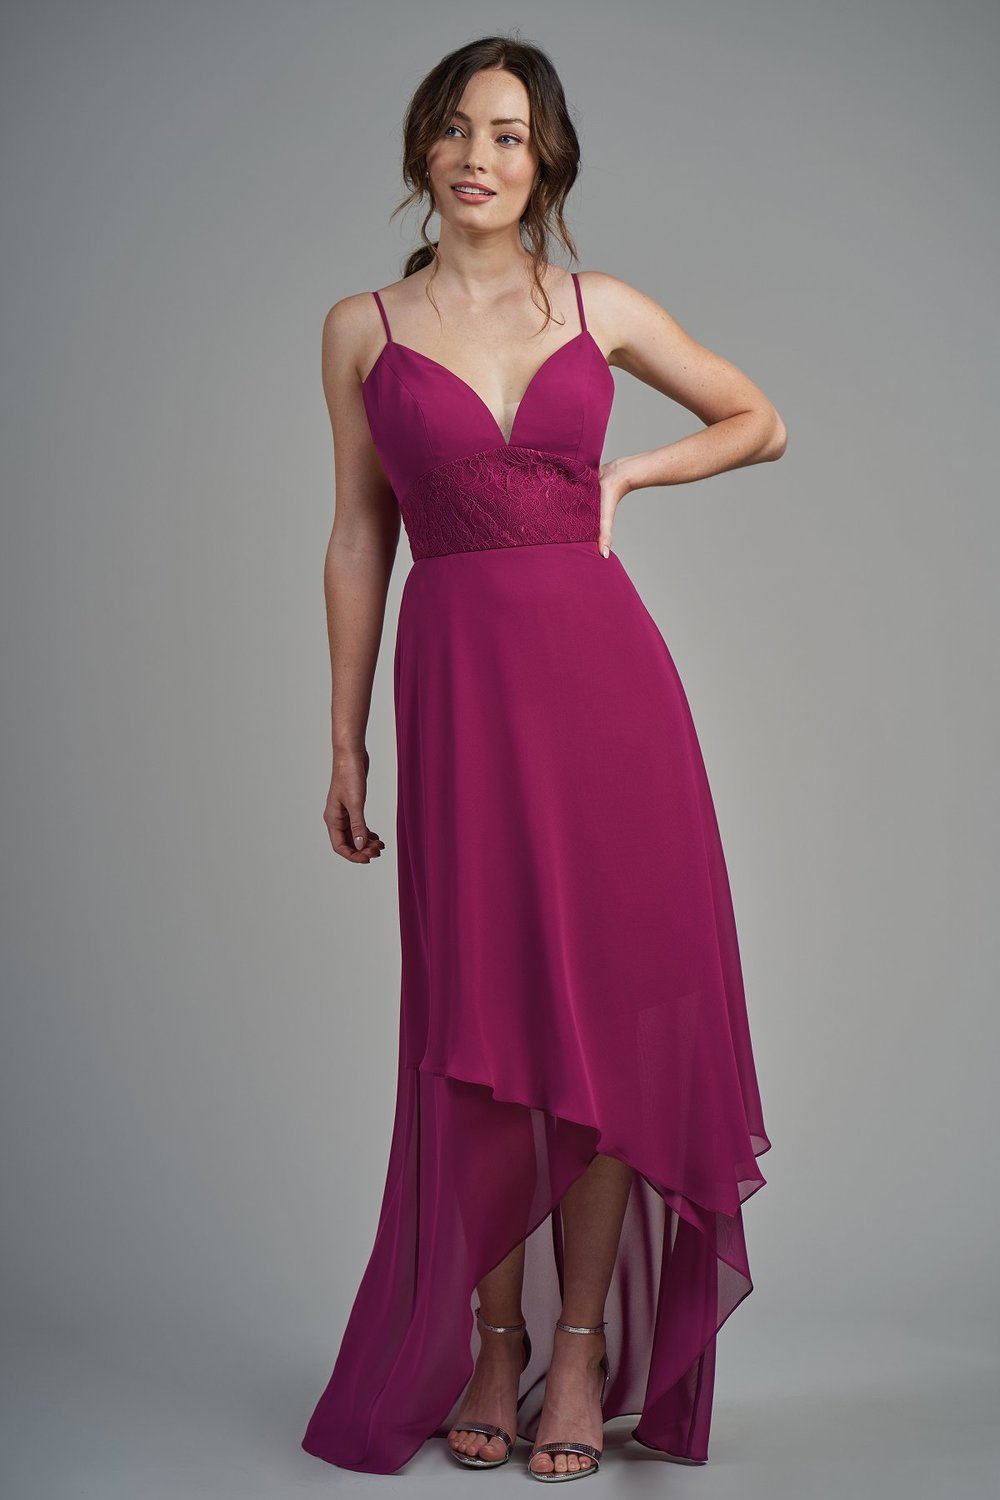 B213008 -  Beautiful poly chiffon and lace high-low bridesmaid dress with a flattering V-neckline and spaghetti straps. Beautiful lace on the bodice to complete the flowy bridesmaid look    Available in 22 colors